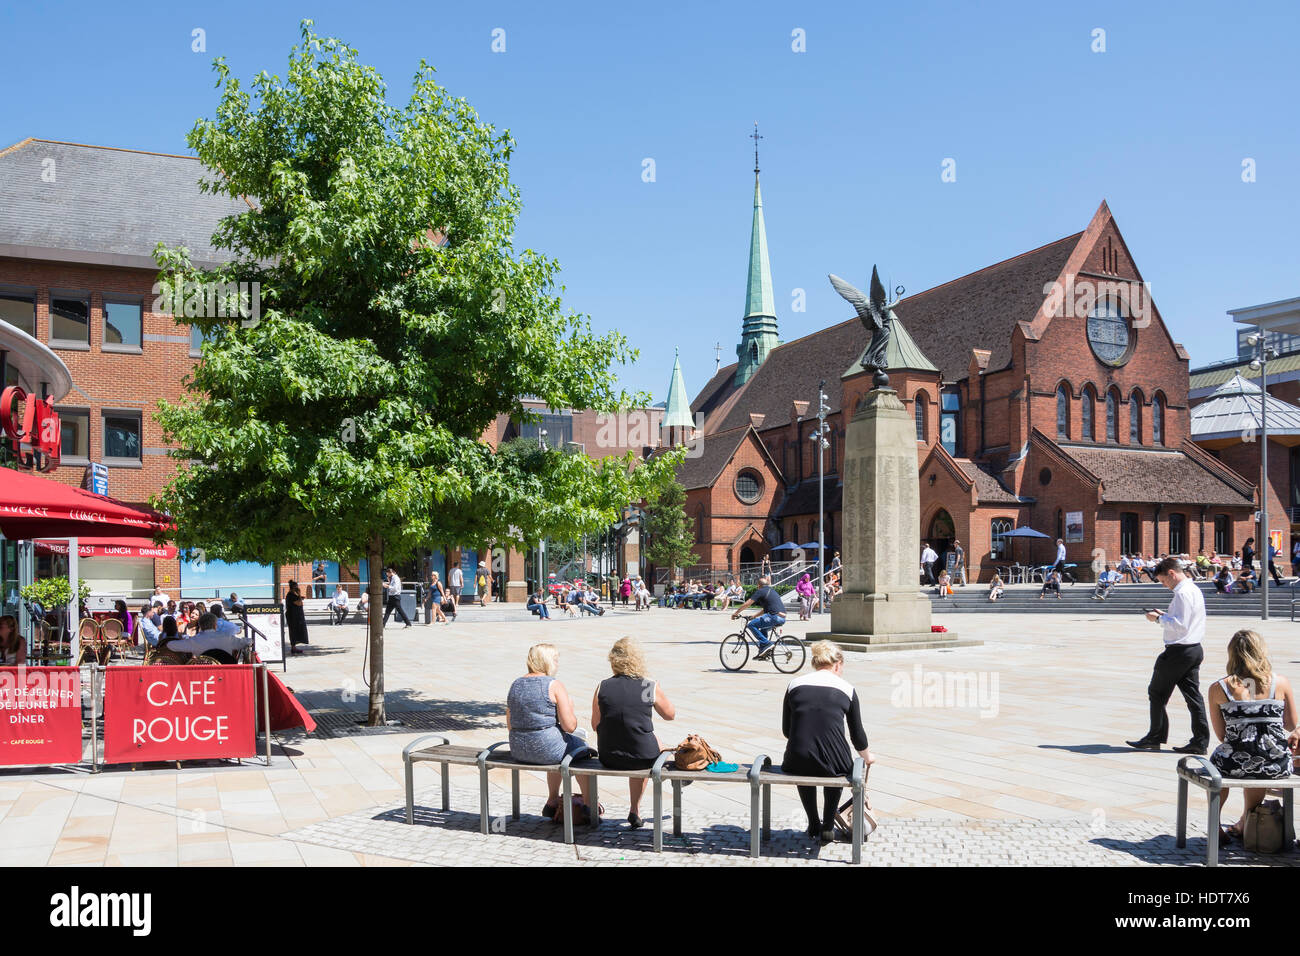 Woking Town Square showing War Memorial and Christ Church, Woking, Surrey, England, United Kingdom - Stock Image